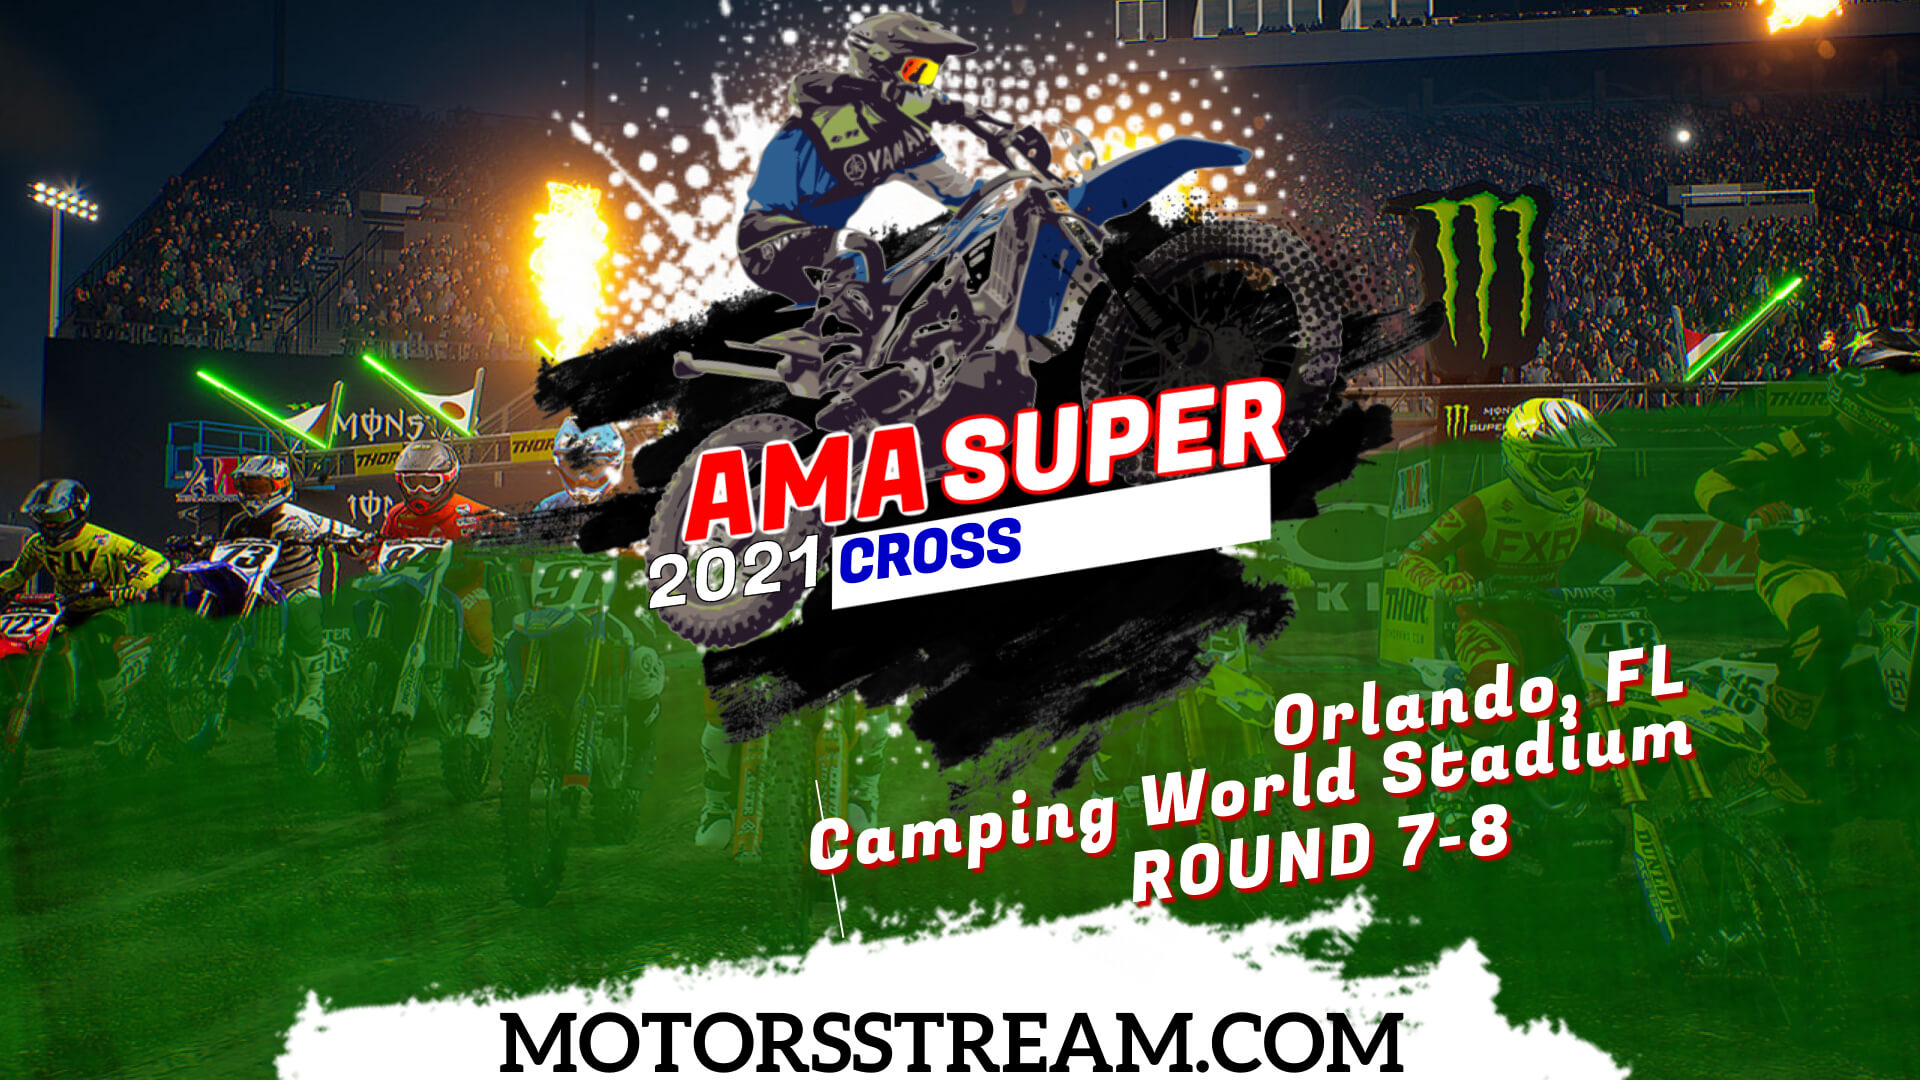 Orlando AMA Supercross Live Stream